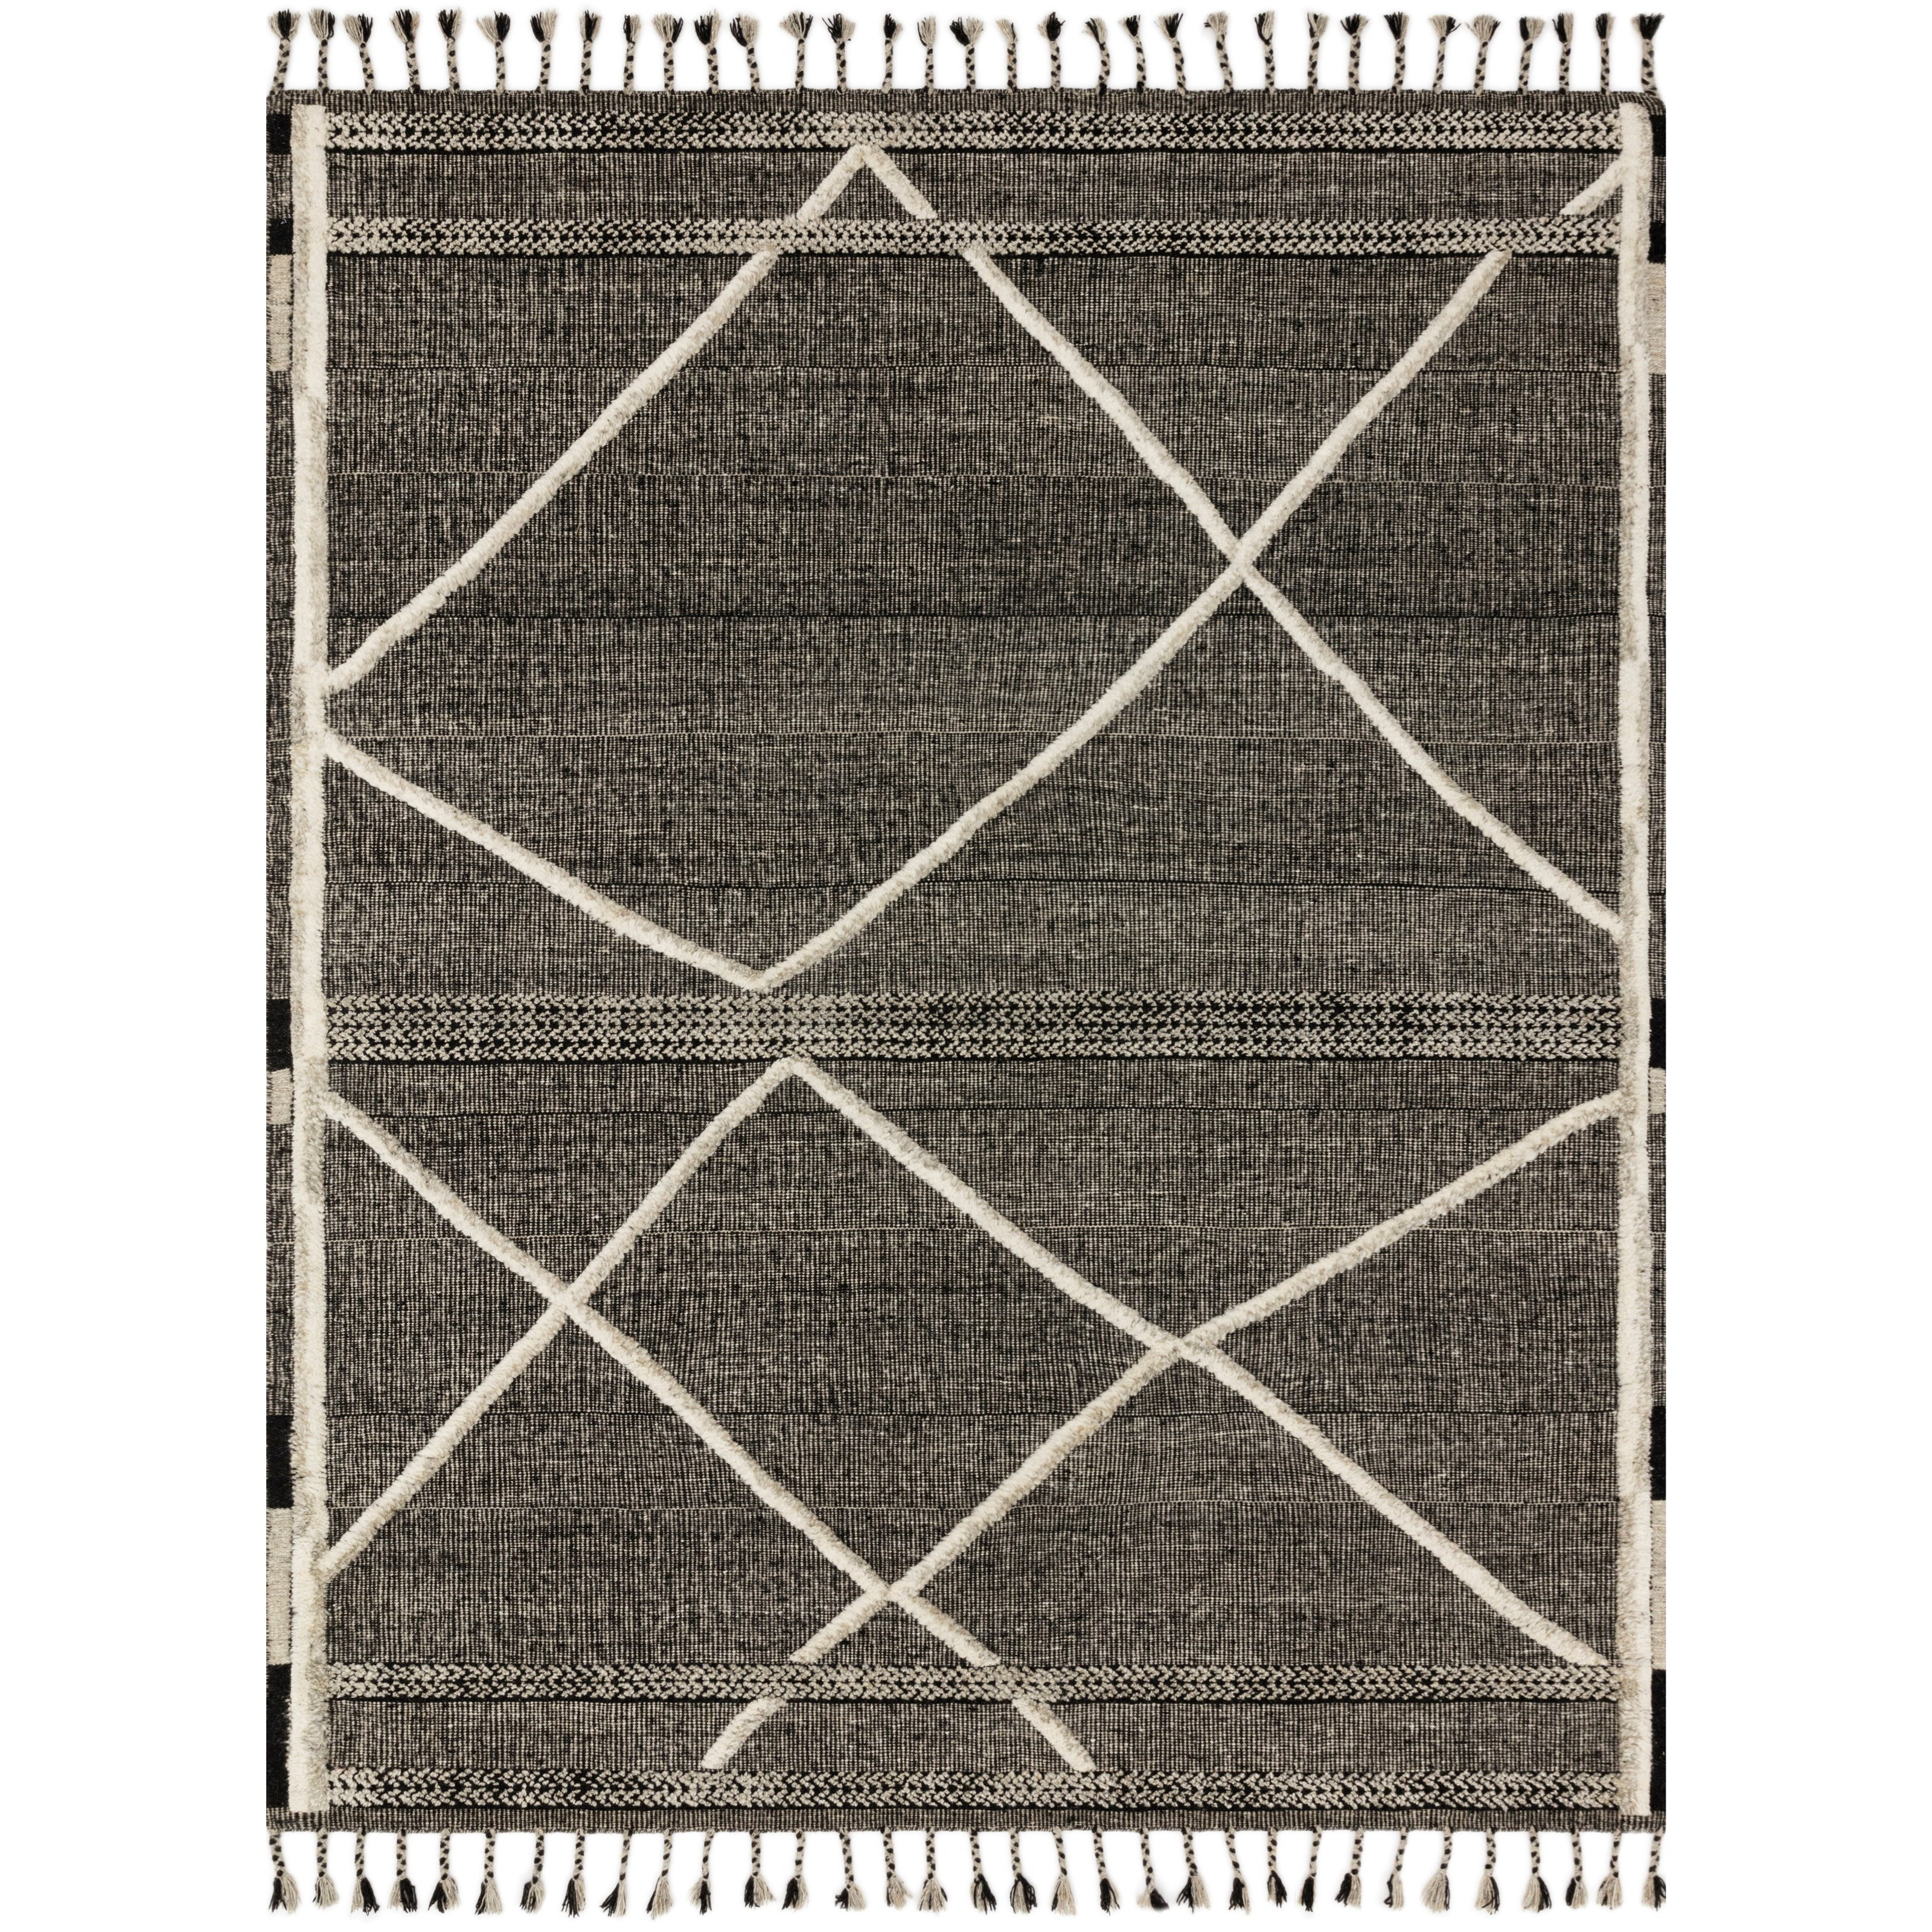 """Iman 1'6"""" x 1'6""""  Beige / Charcoal Rug by Loloi Rugs at Jacksonville Furniture Mart"""